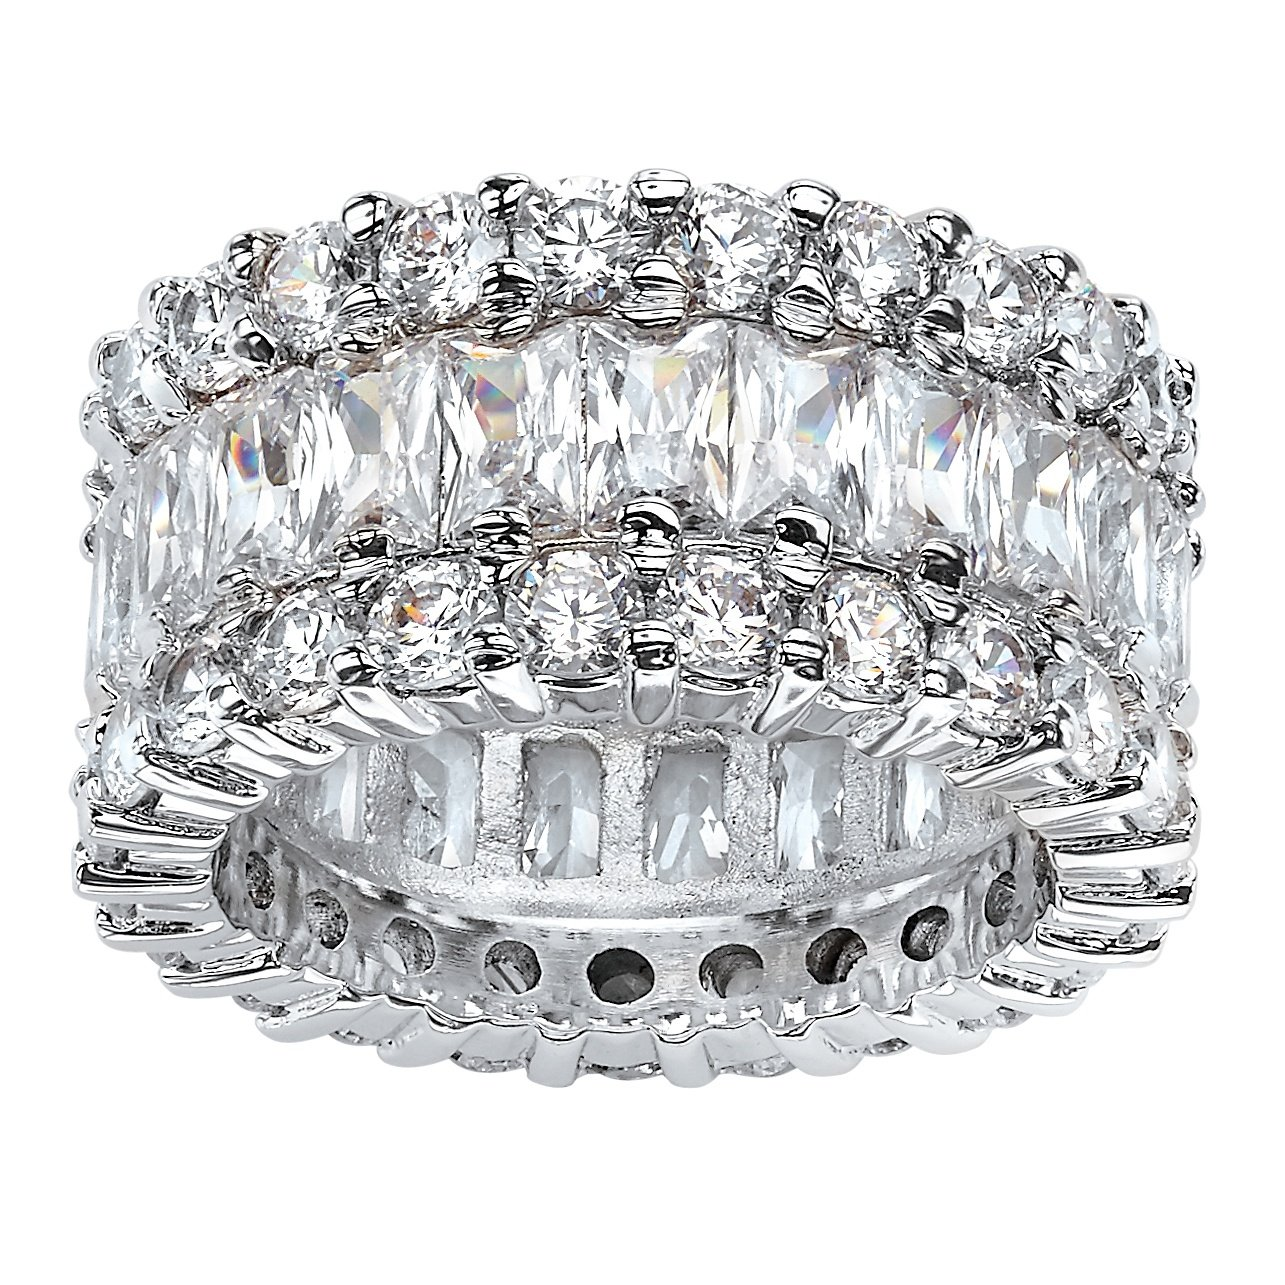 Platinum over Sterling Silver Baguette Cubic Zirconia and Round Eternity Ring Size 10 by Palm Beach Jewelry